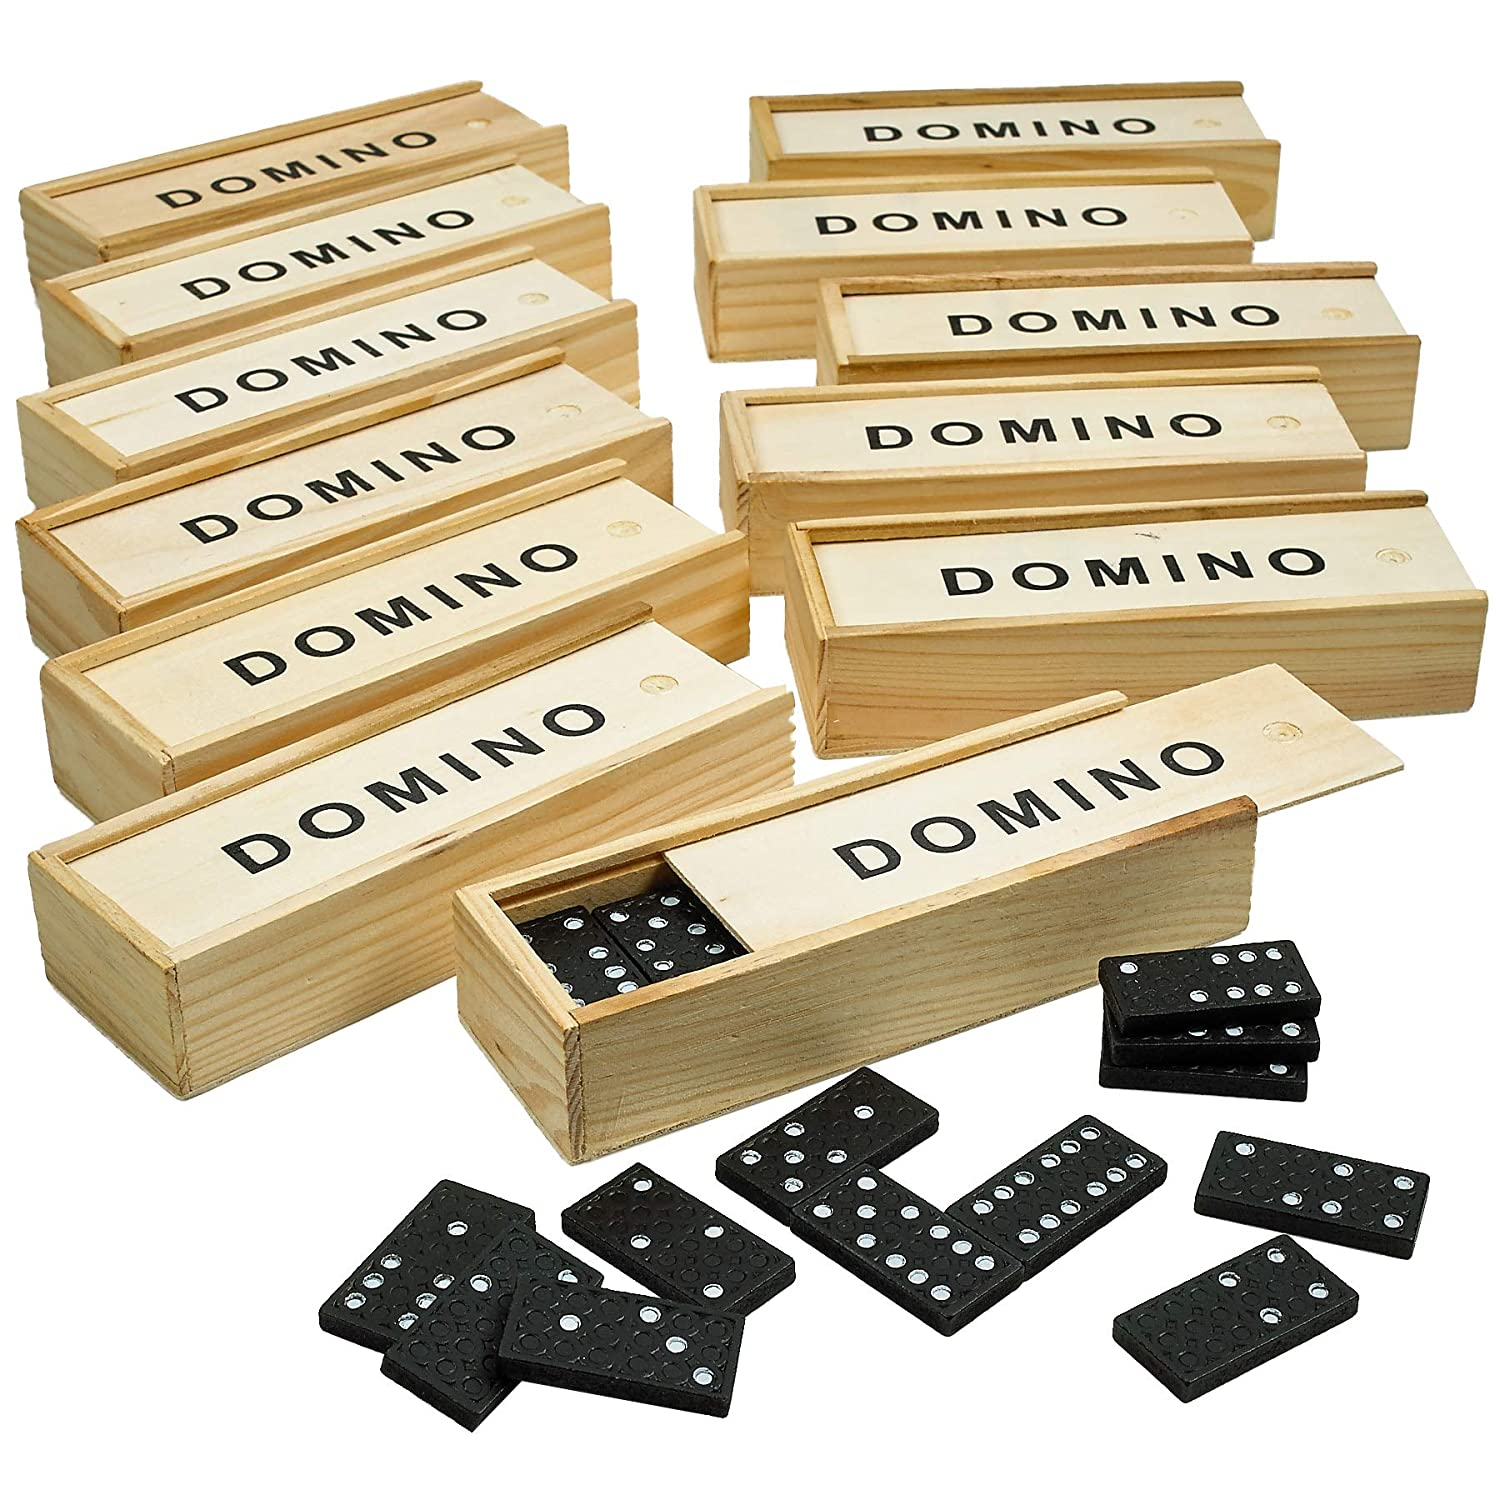 Wooden Dominoes Set Pack of 12 Classic Board Games Building Blocks Educational Toys Game Tiles Leisure Time Perfect for Toddler and Adult